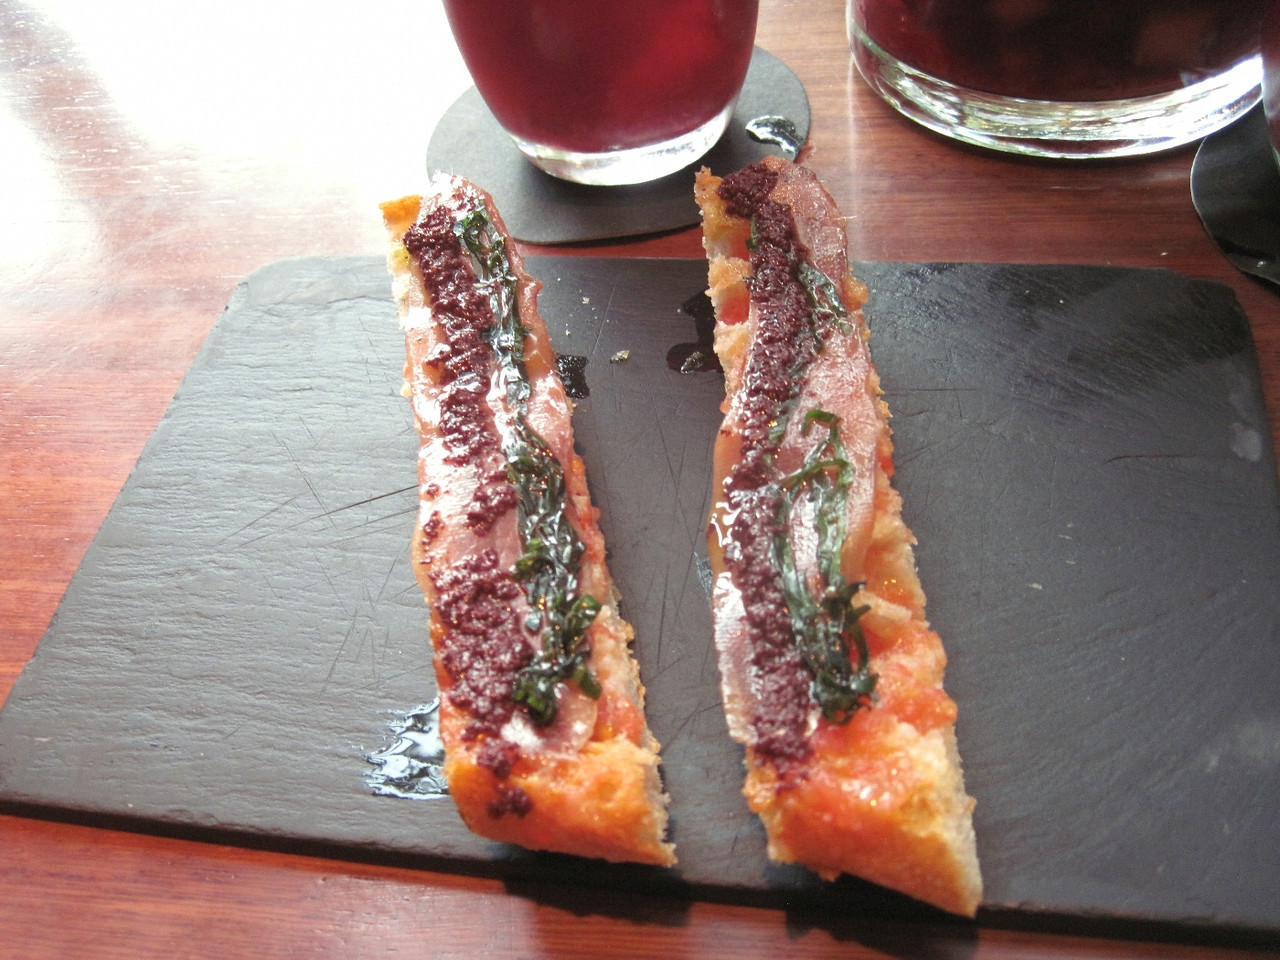 I think this was Spanish ham on top of bread.